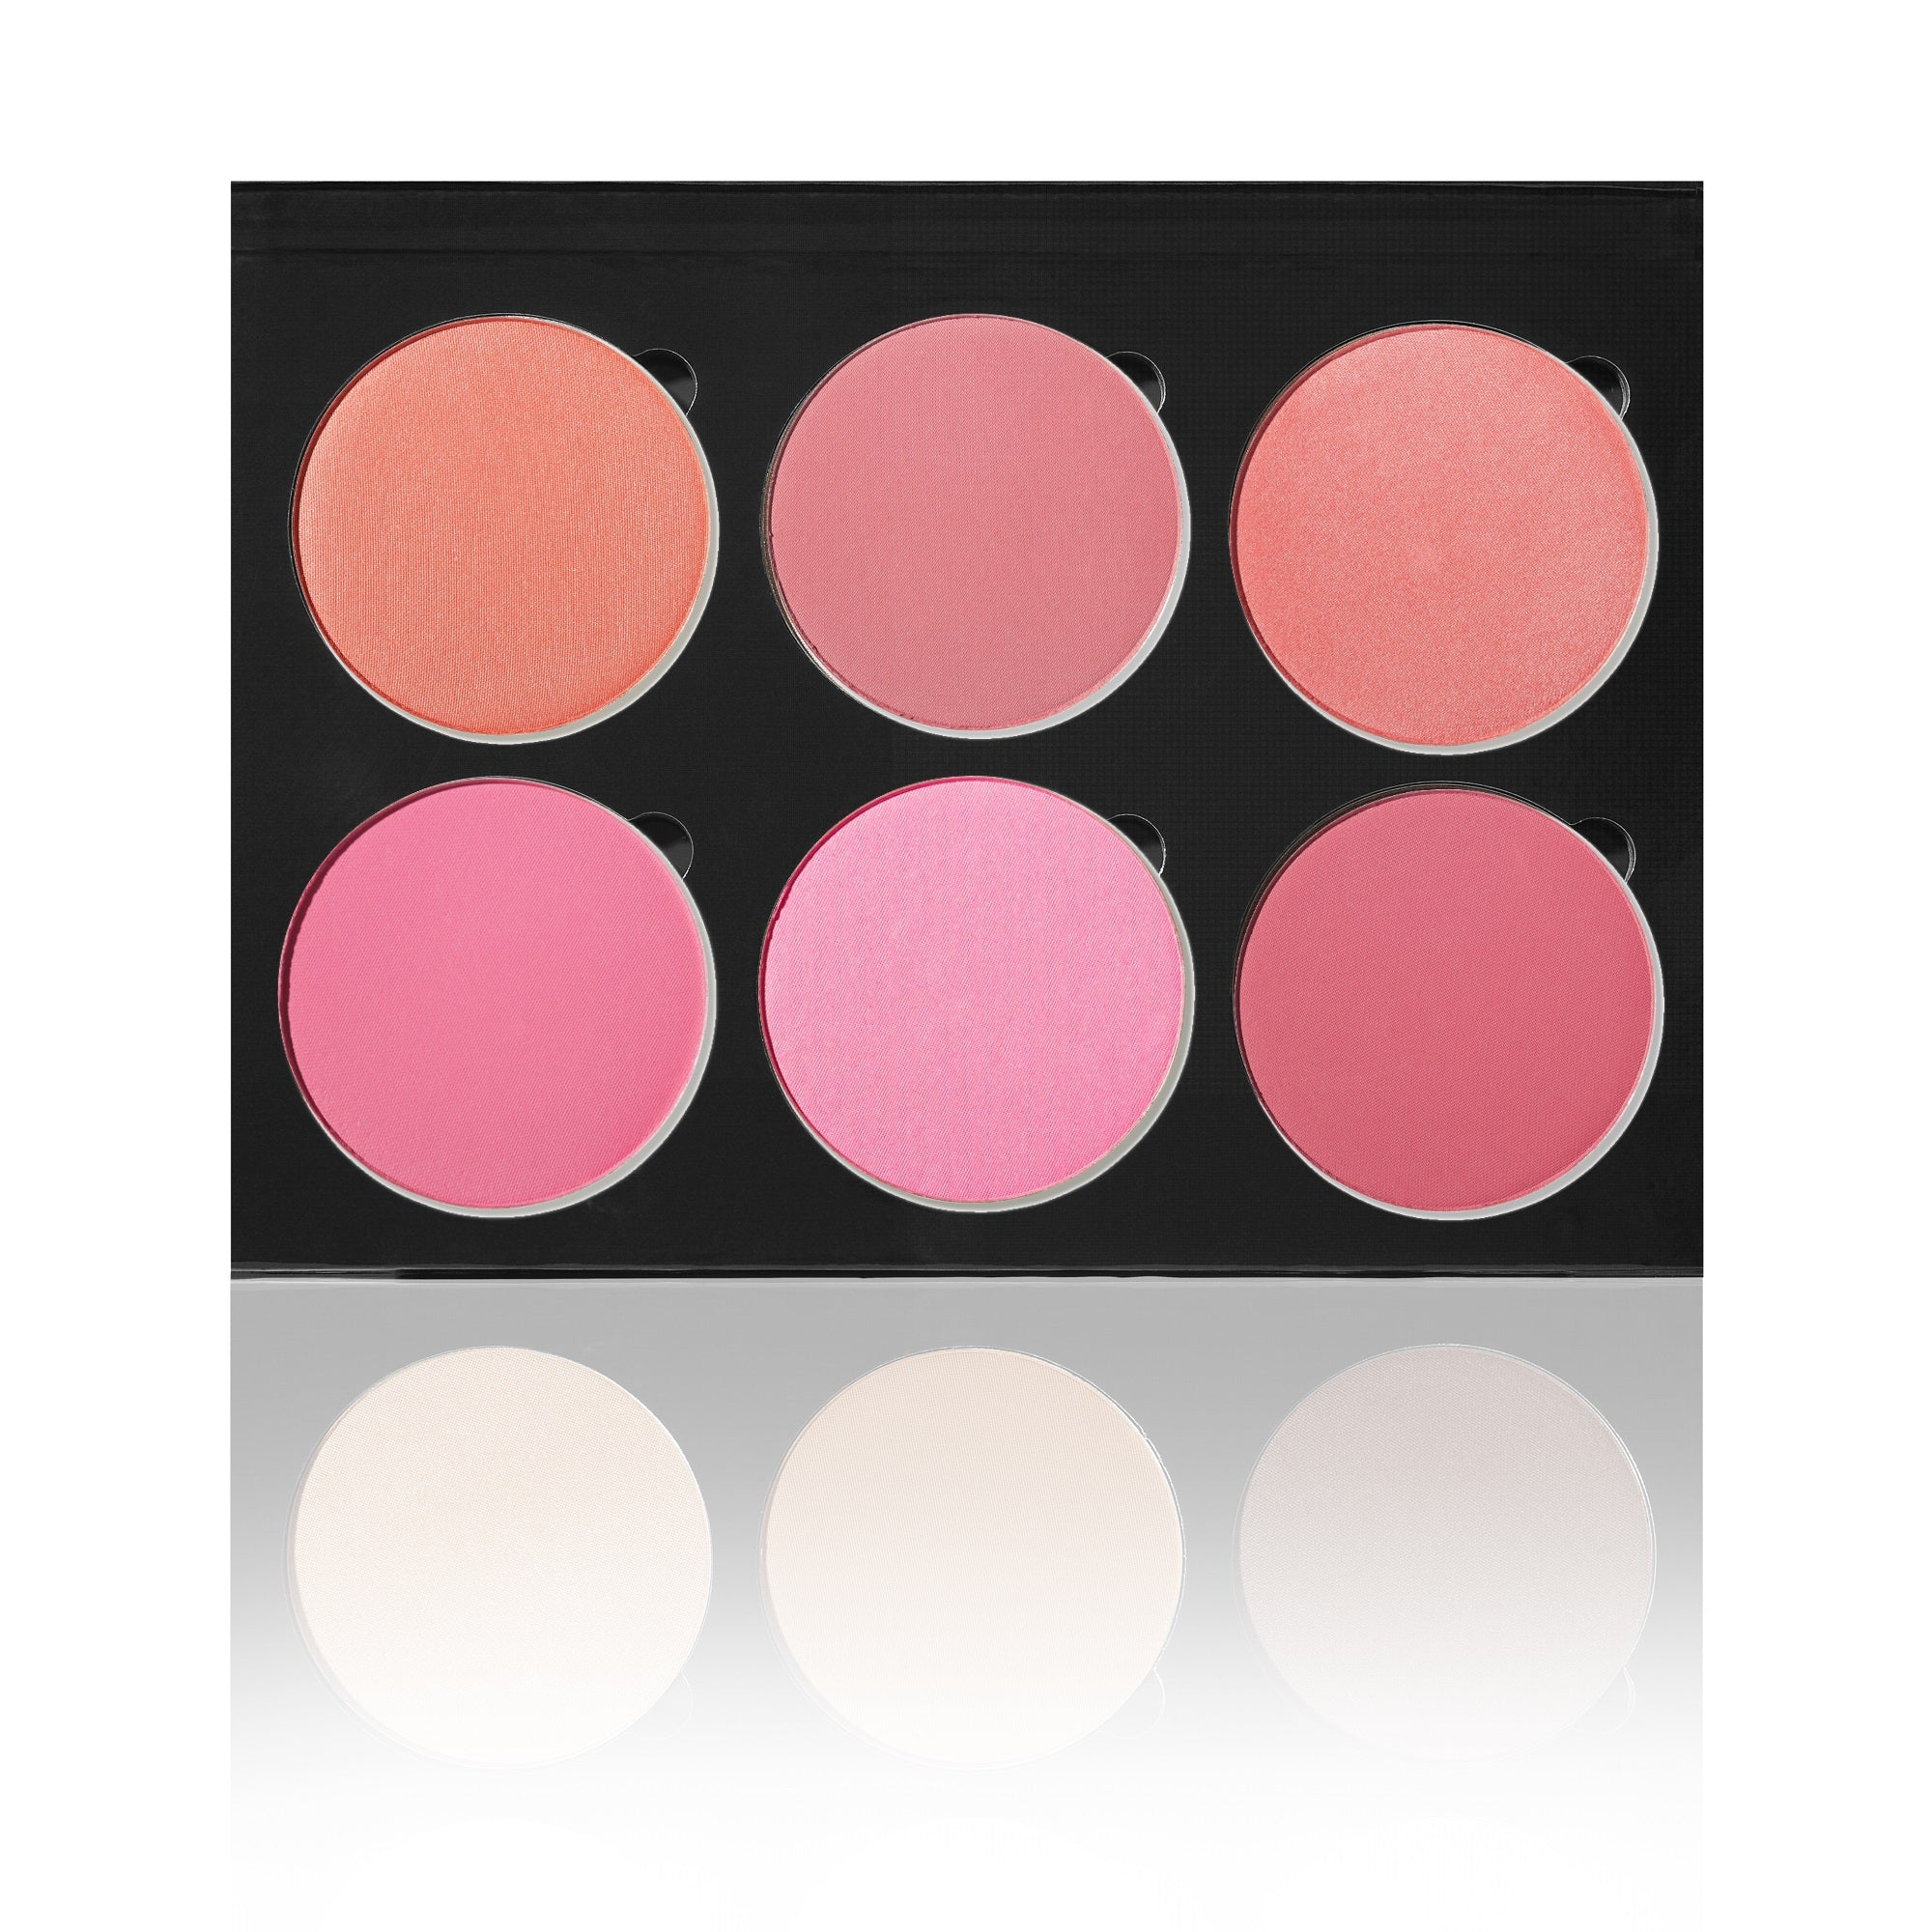 Blushing Bride Palette